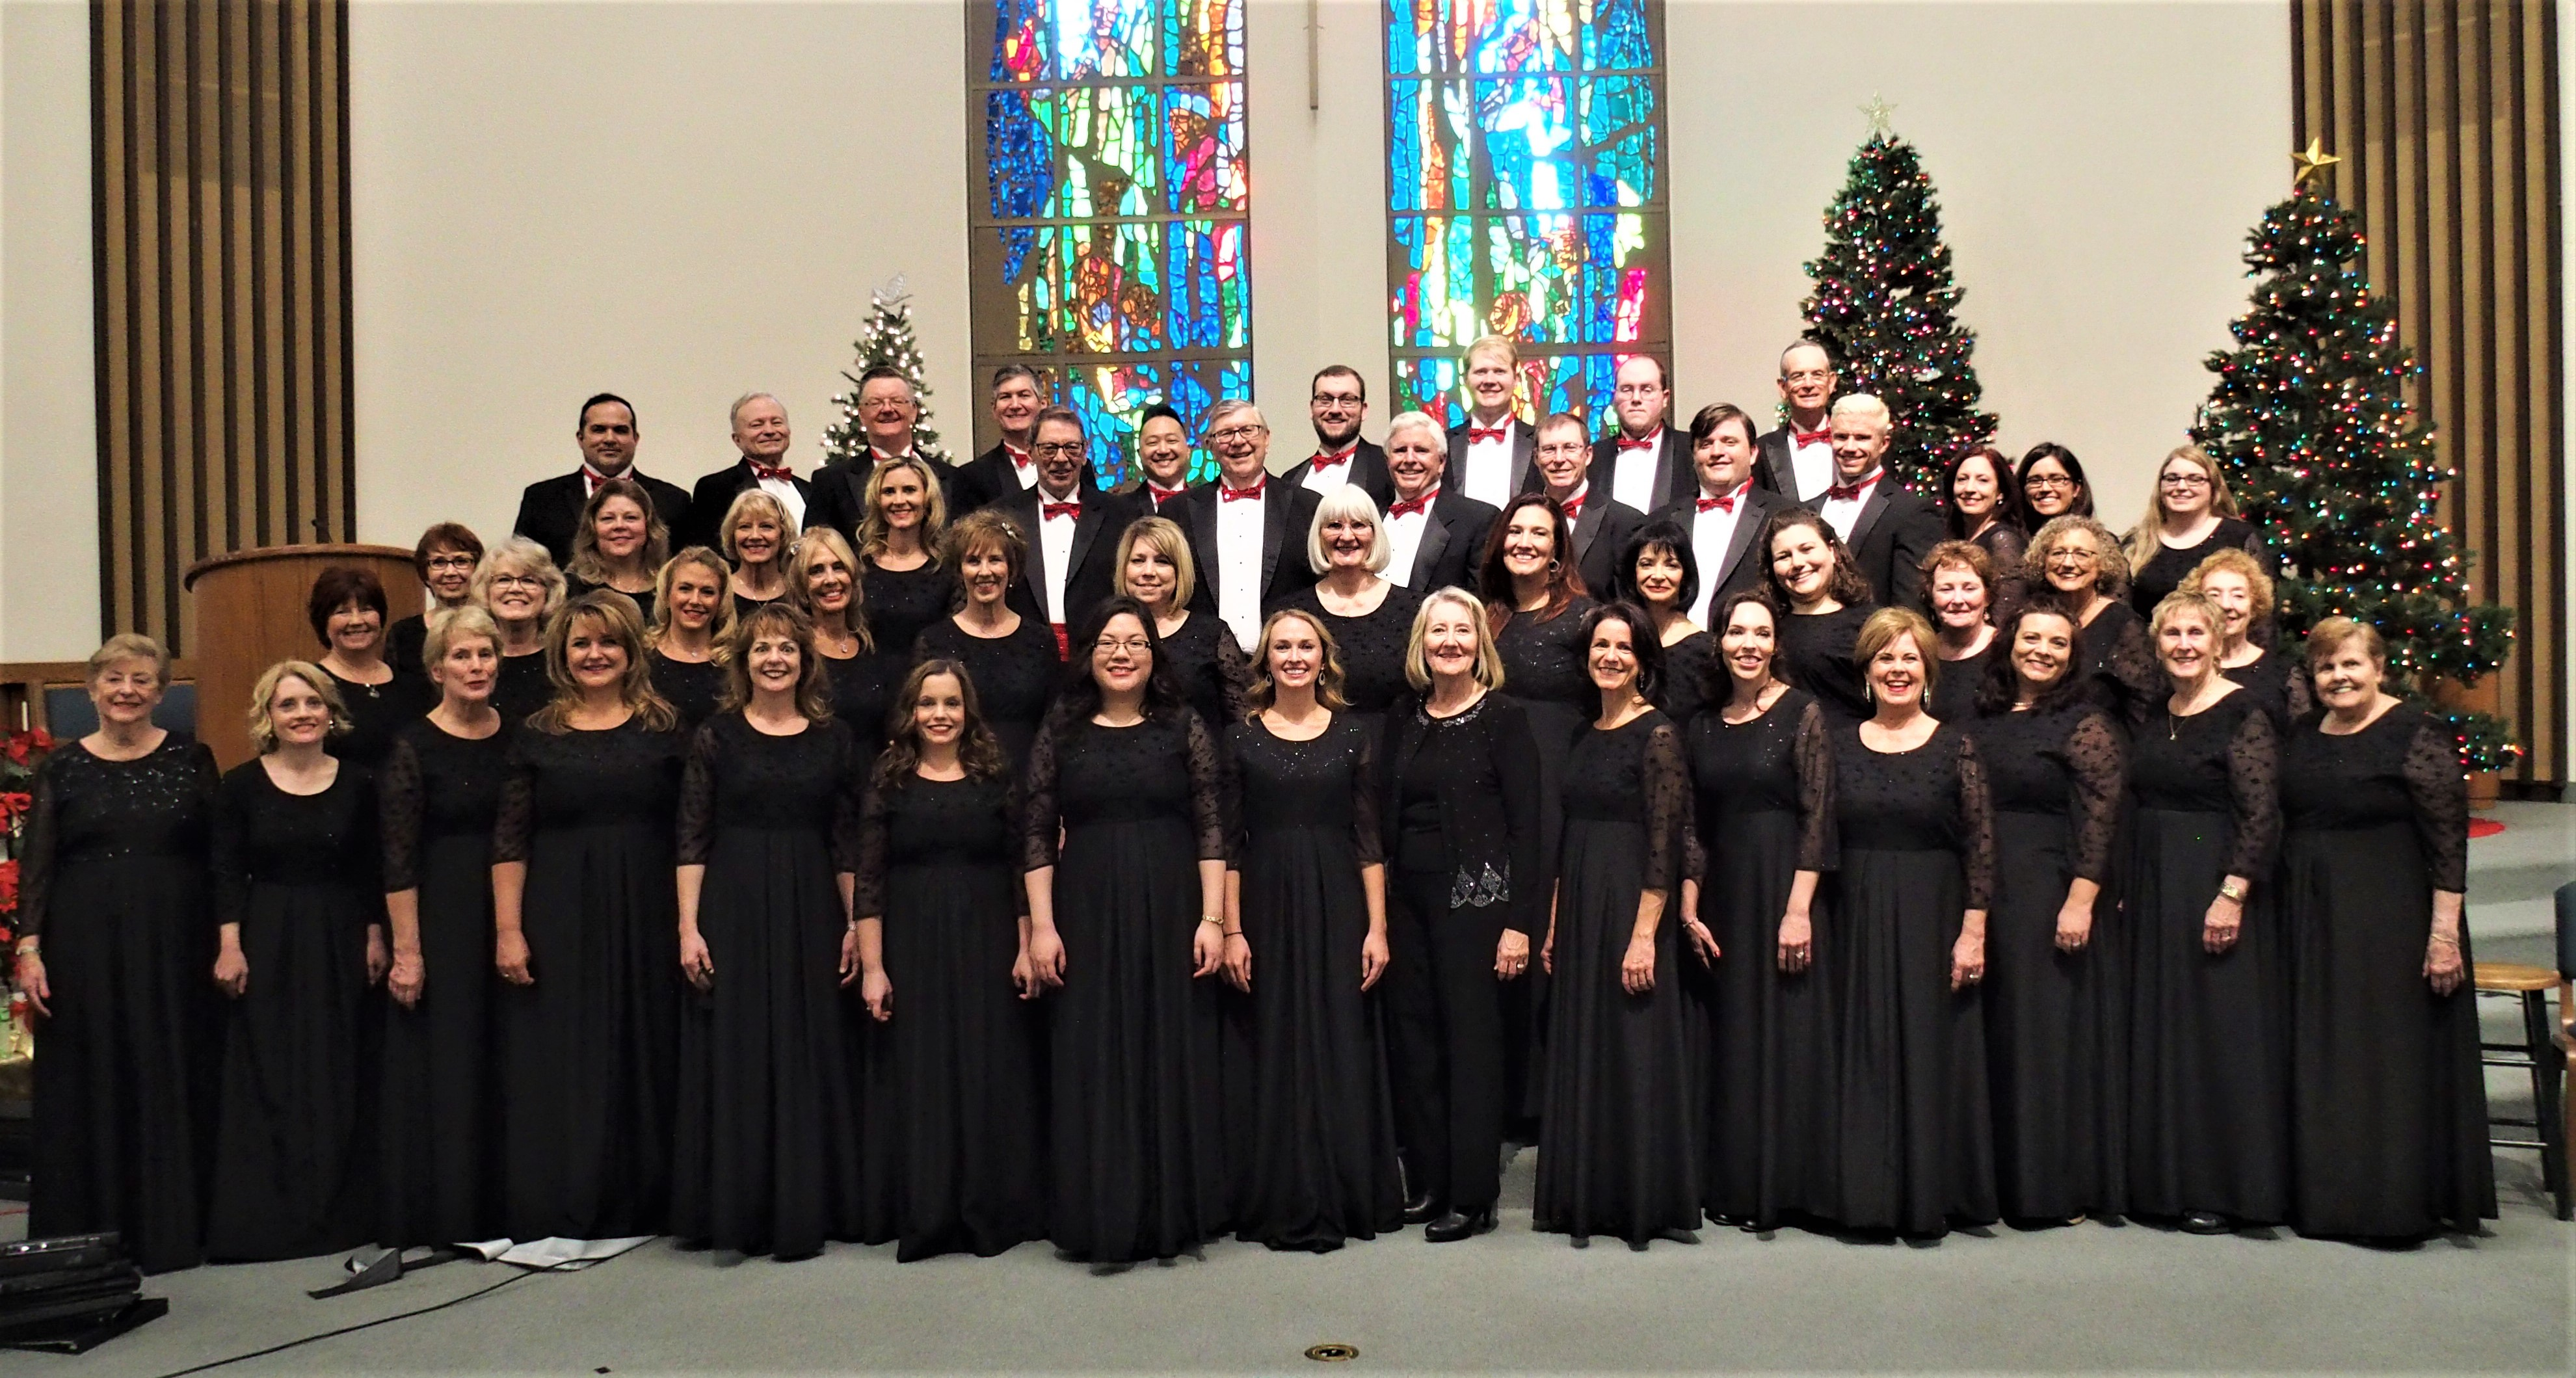 North Valley Chorale